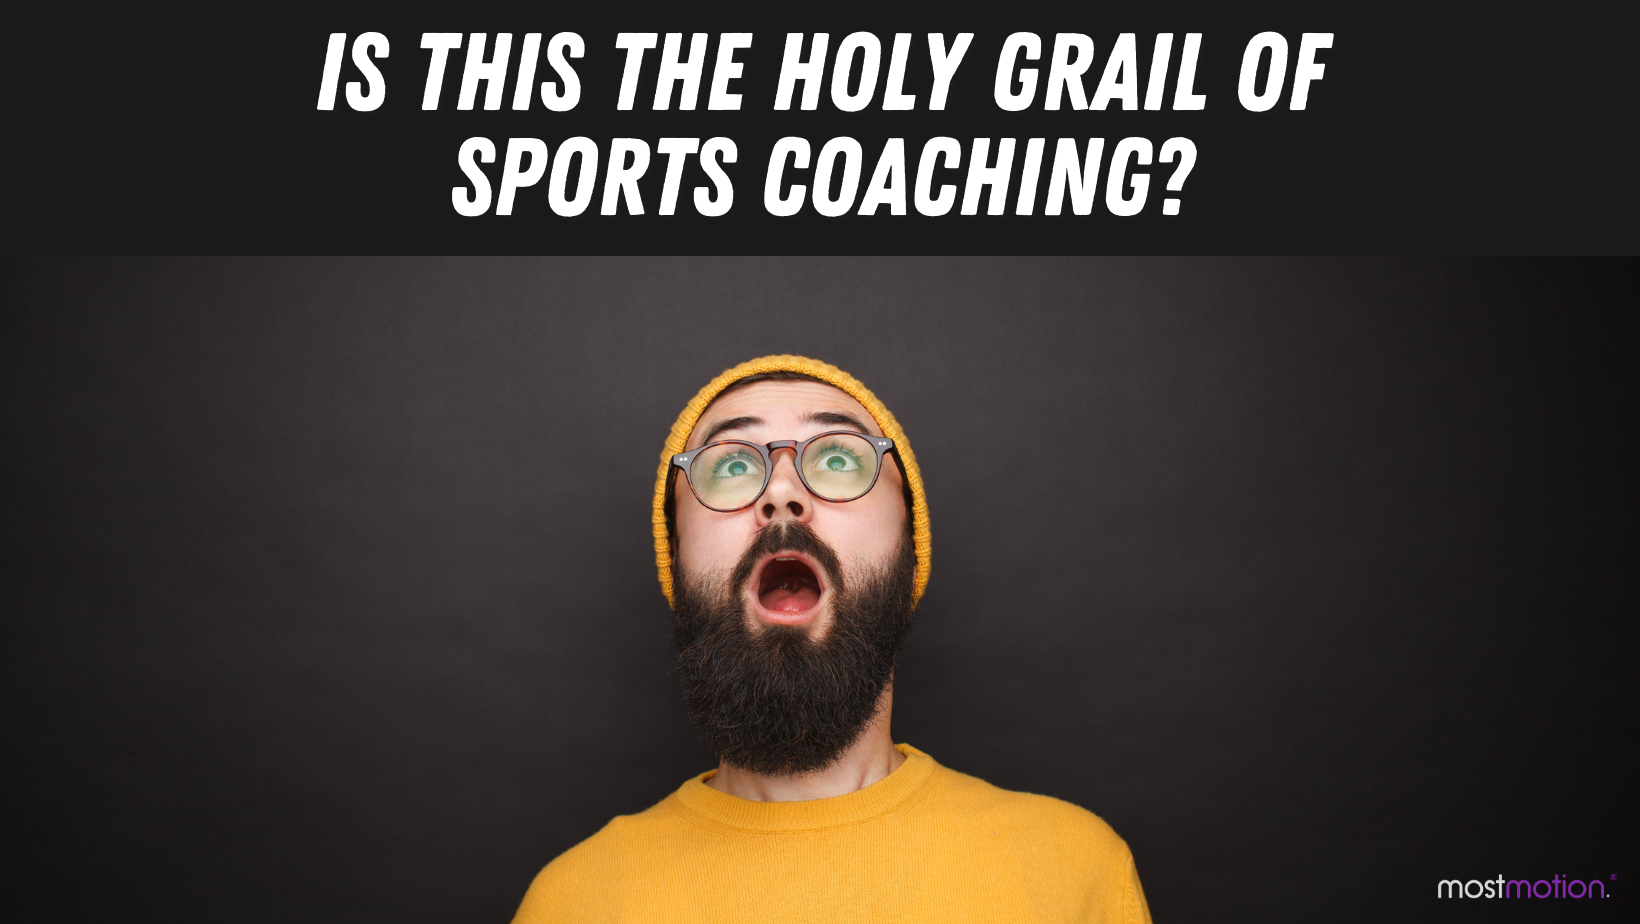 Is This the Holy Grail of Sports Coaching?